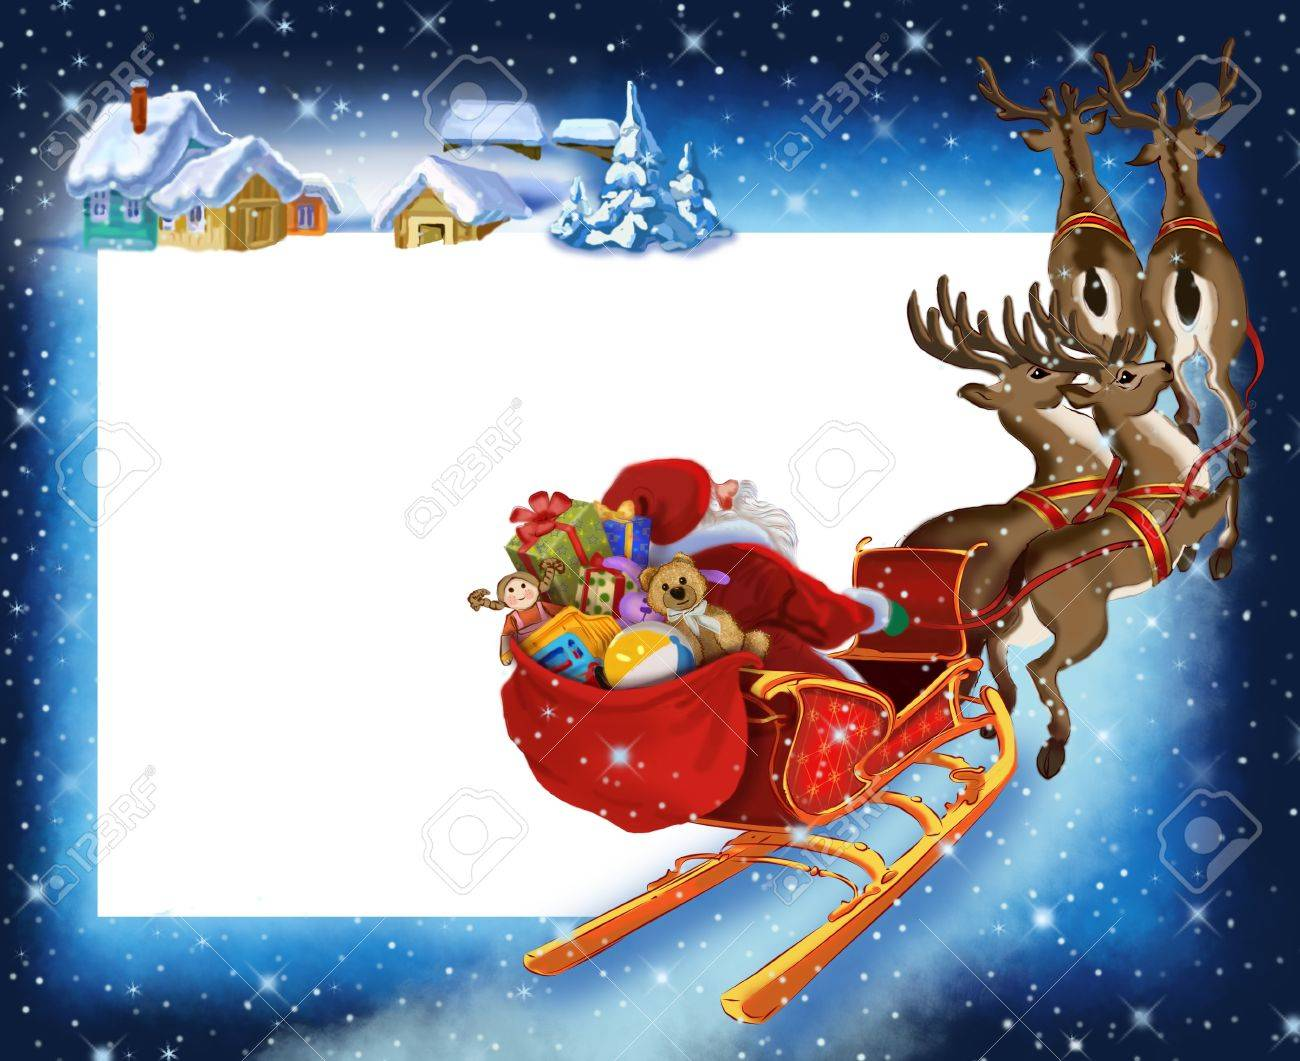 Background with Santa Claus on reindeer Stock Photo - 8428350